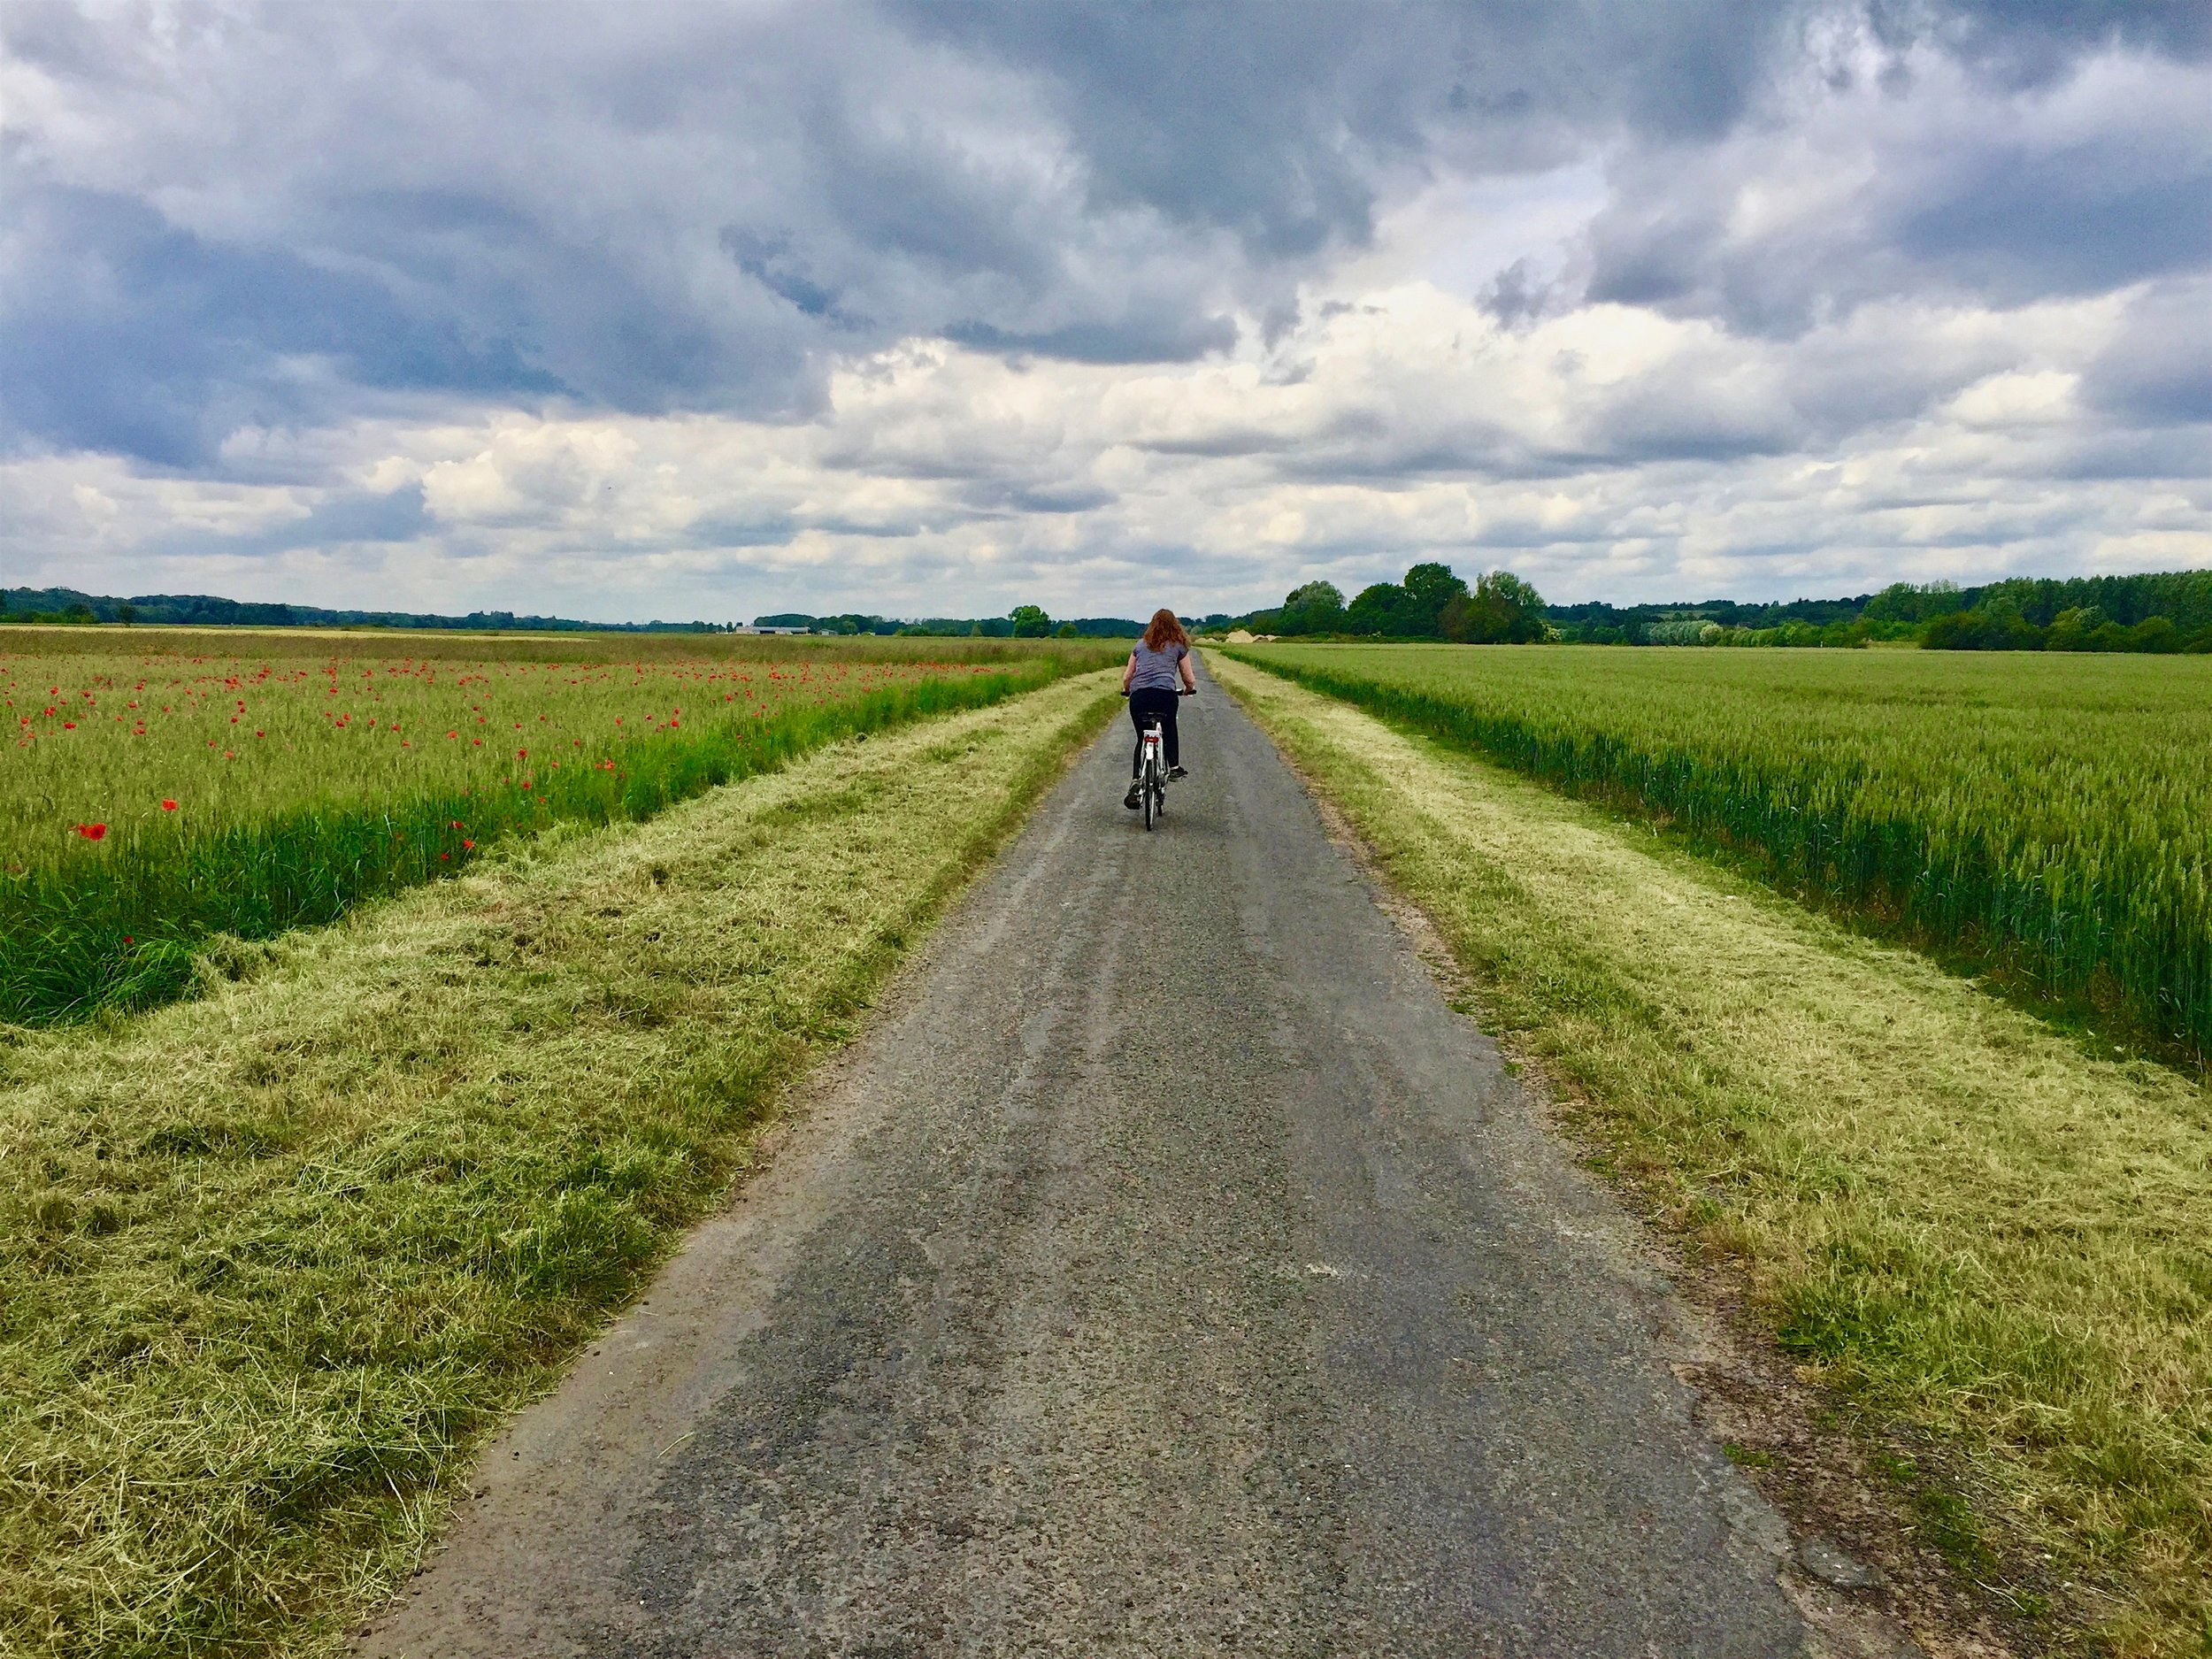 Biking Riding to Chenonceau Chateau - The Ultimate Northern France Itinerary